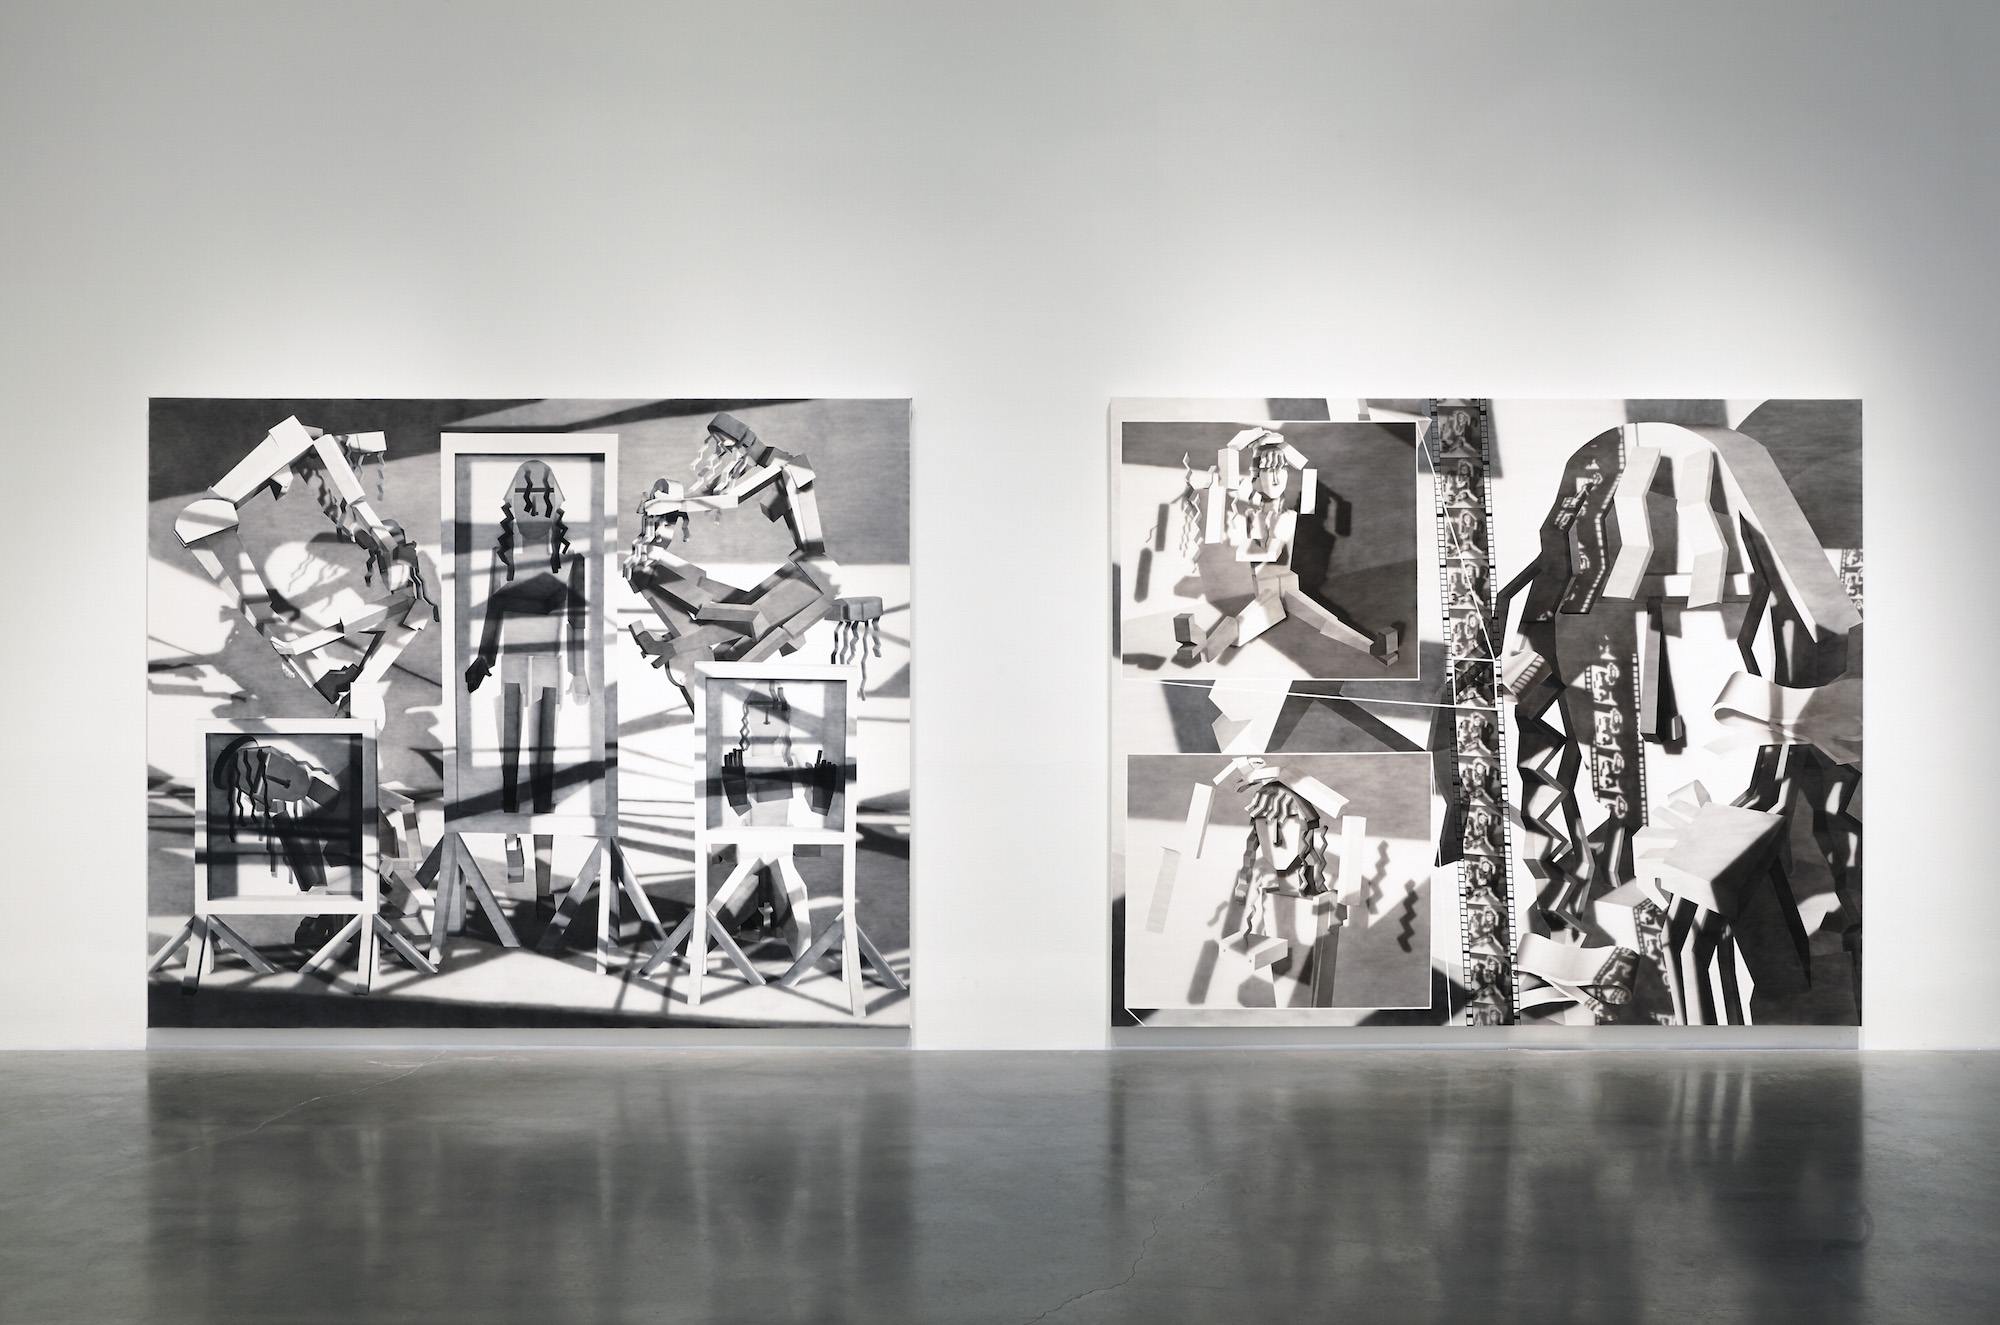 Installation view of Surround Audience featuring Avery Singer. Courtesy of the New Museum. Photo credit: Benoit Pailley